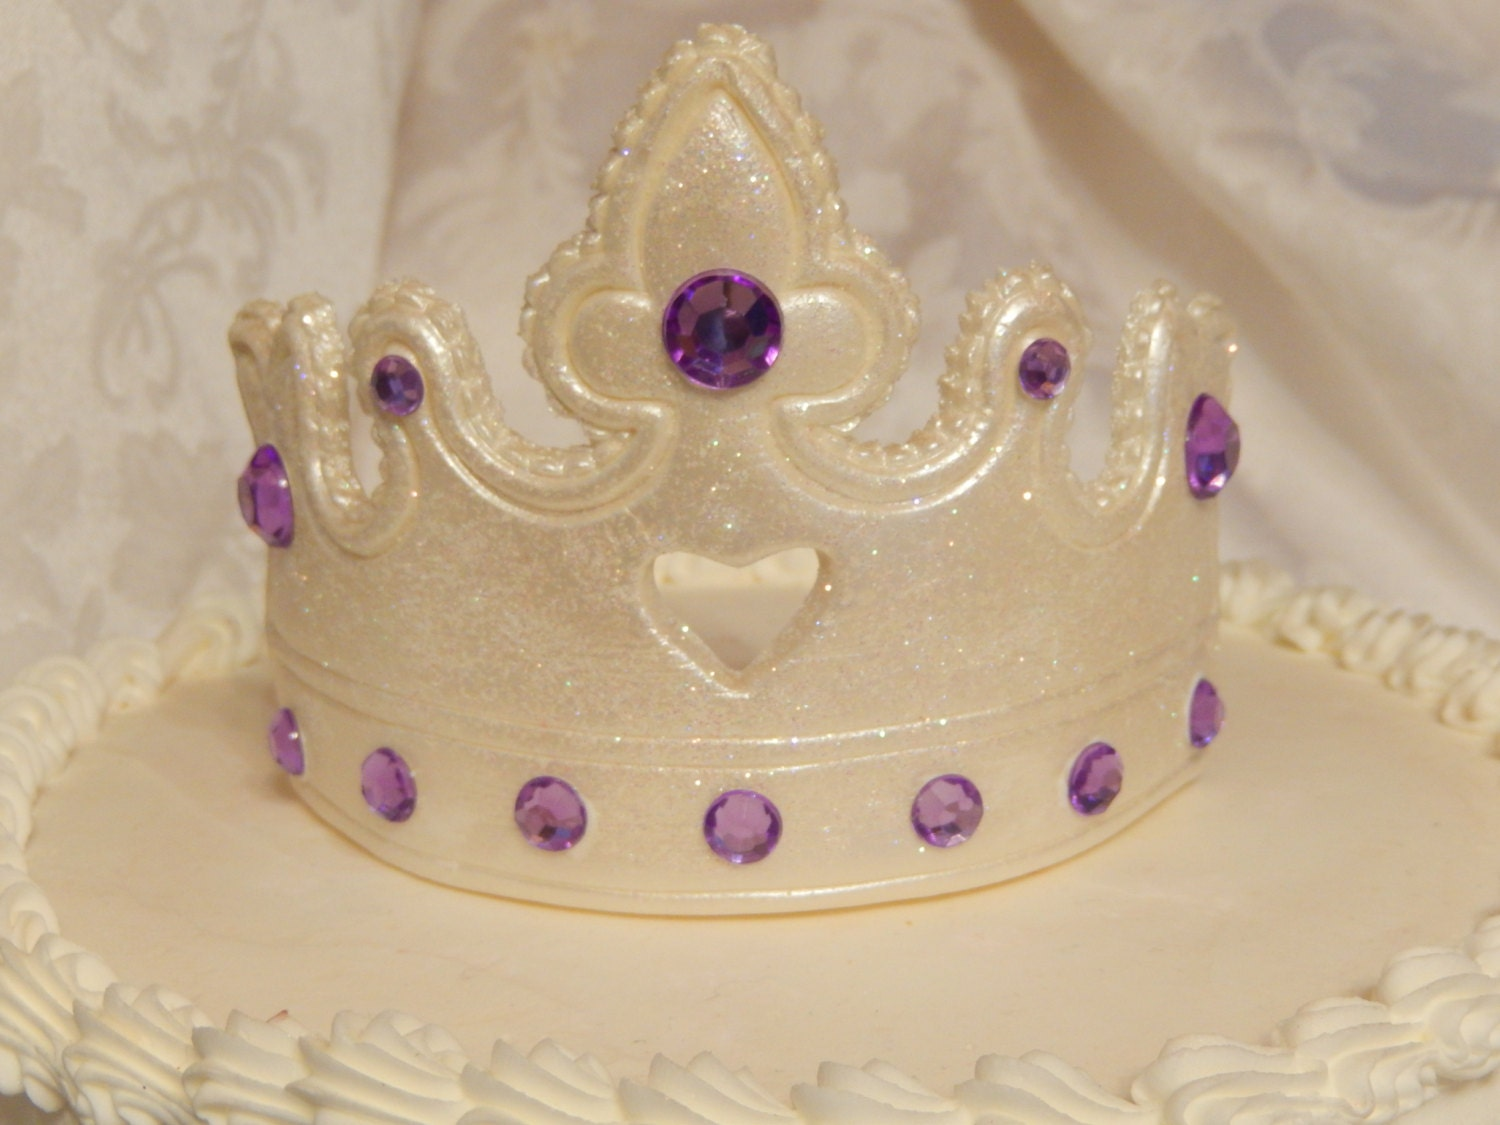 Gumpaste Princess Tiara Crown Cake Topper Decoration